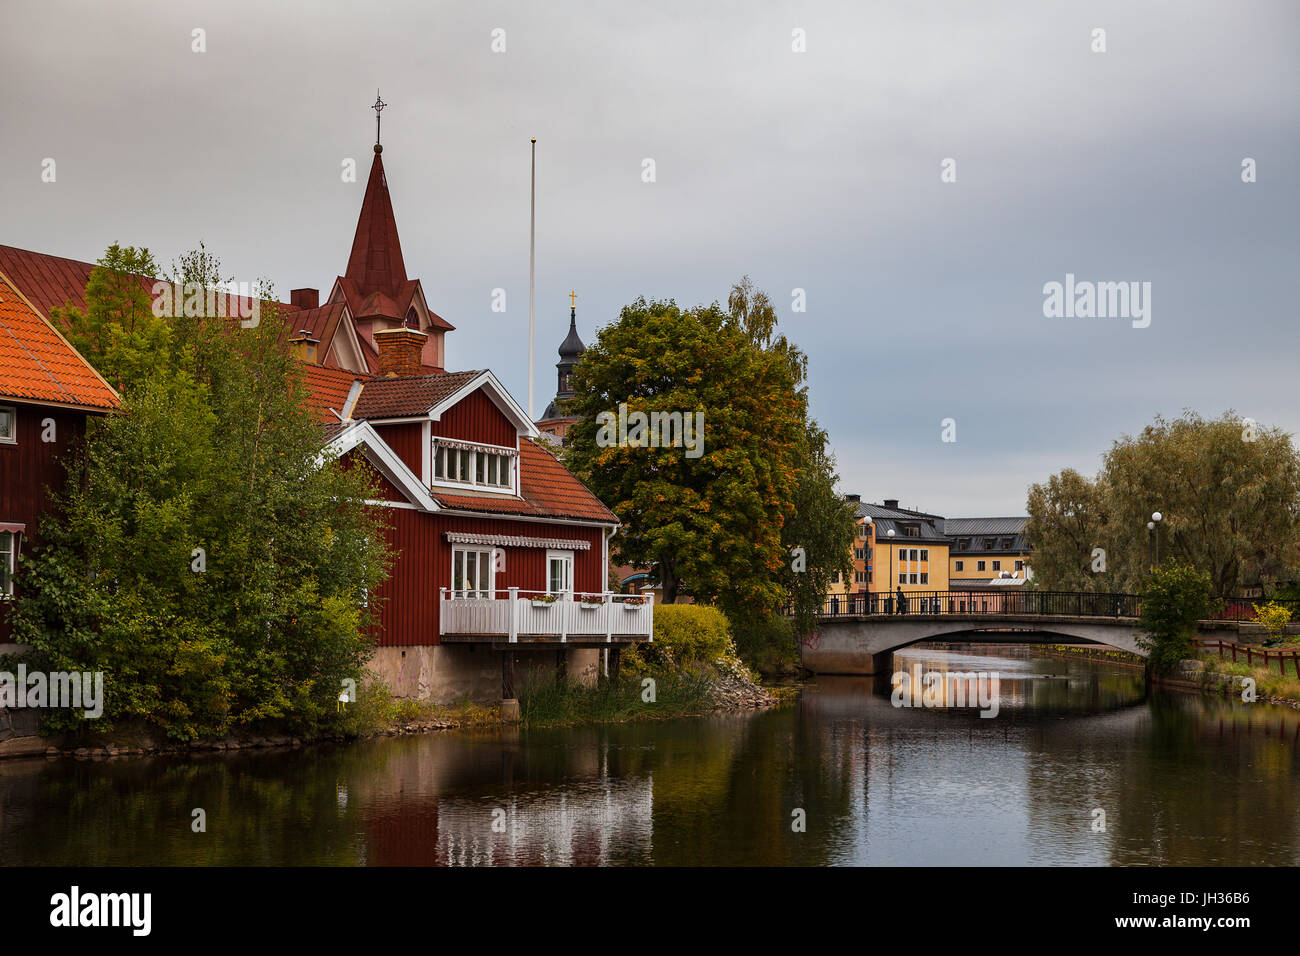 Old tow of Falun with traditional red Swedish wooden dwellings. Dalarna County, Sweden. - Stock Image